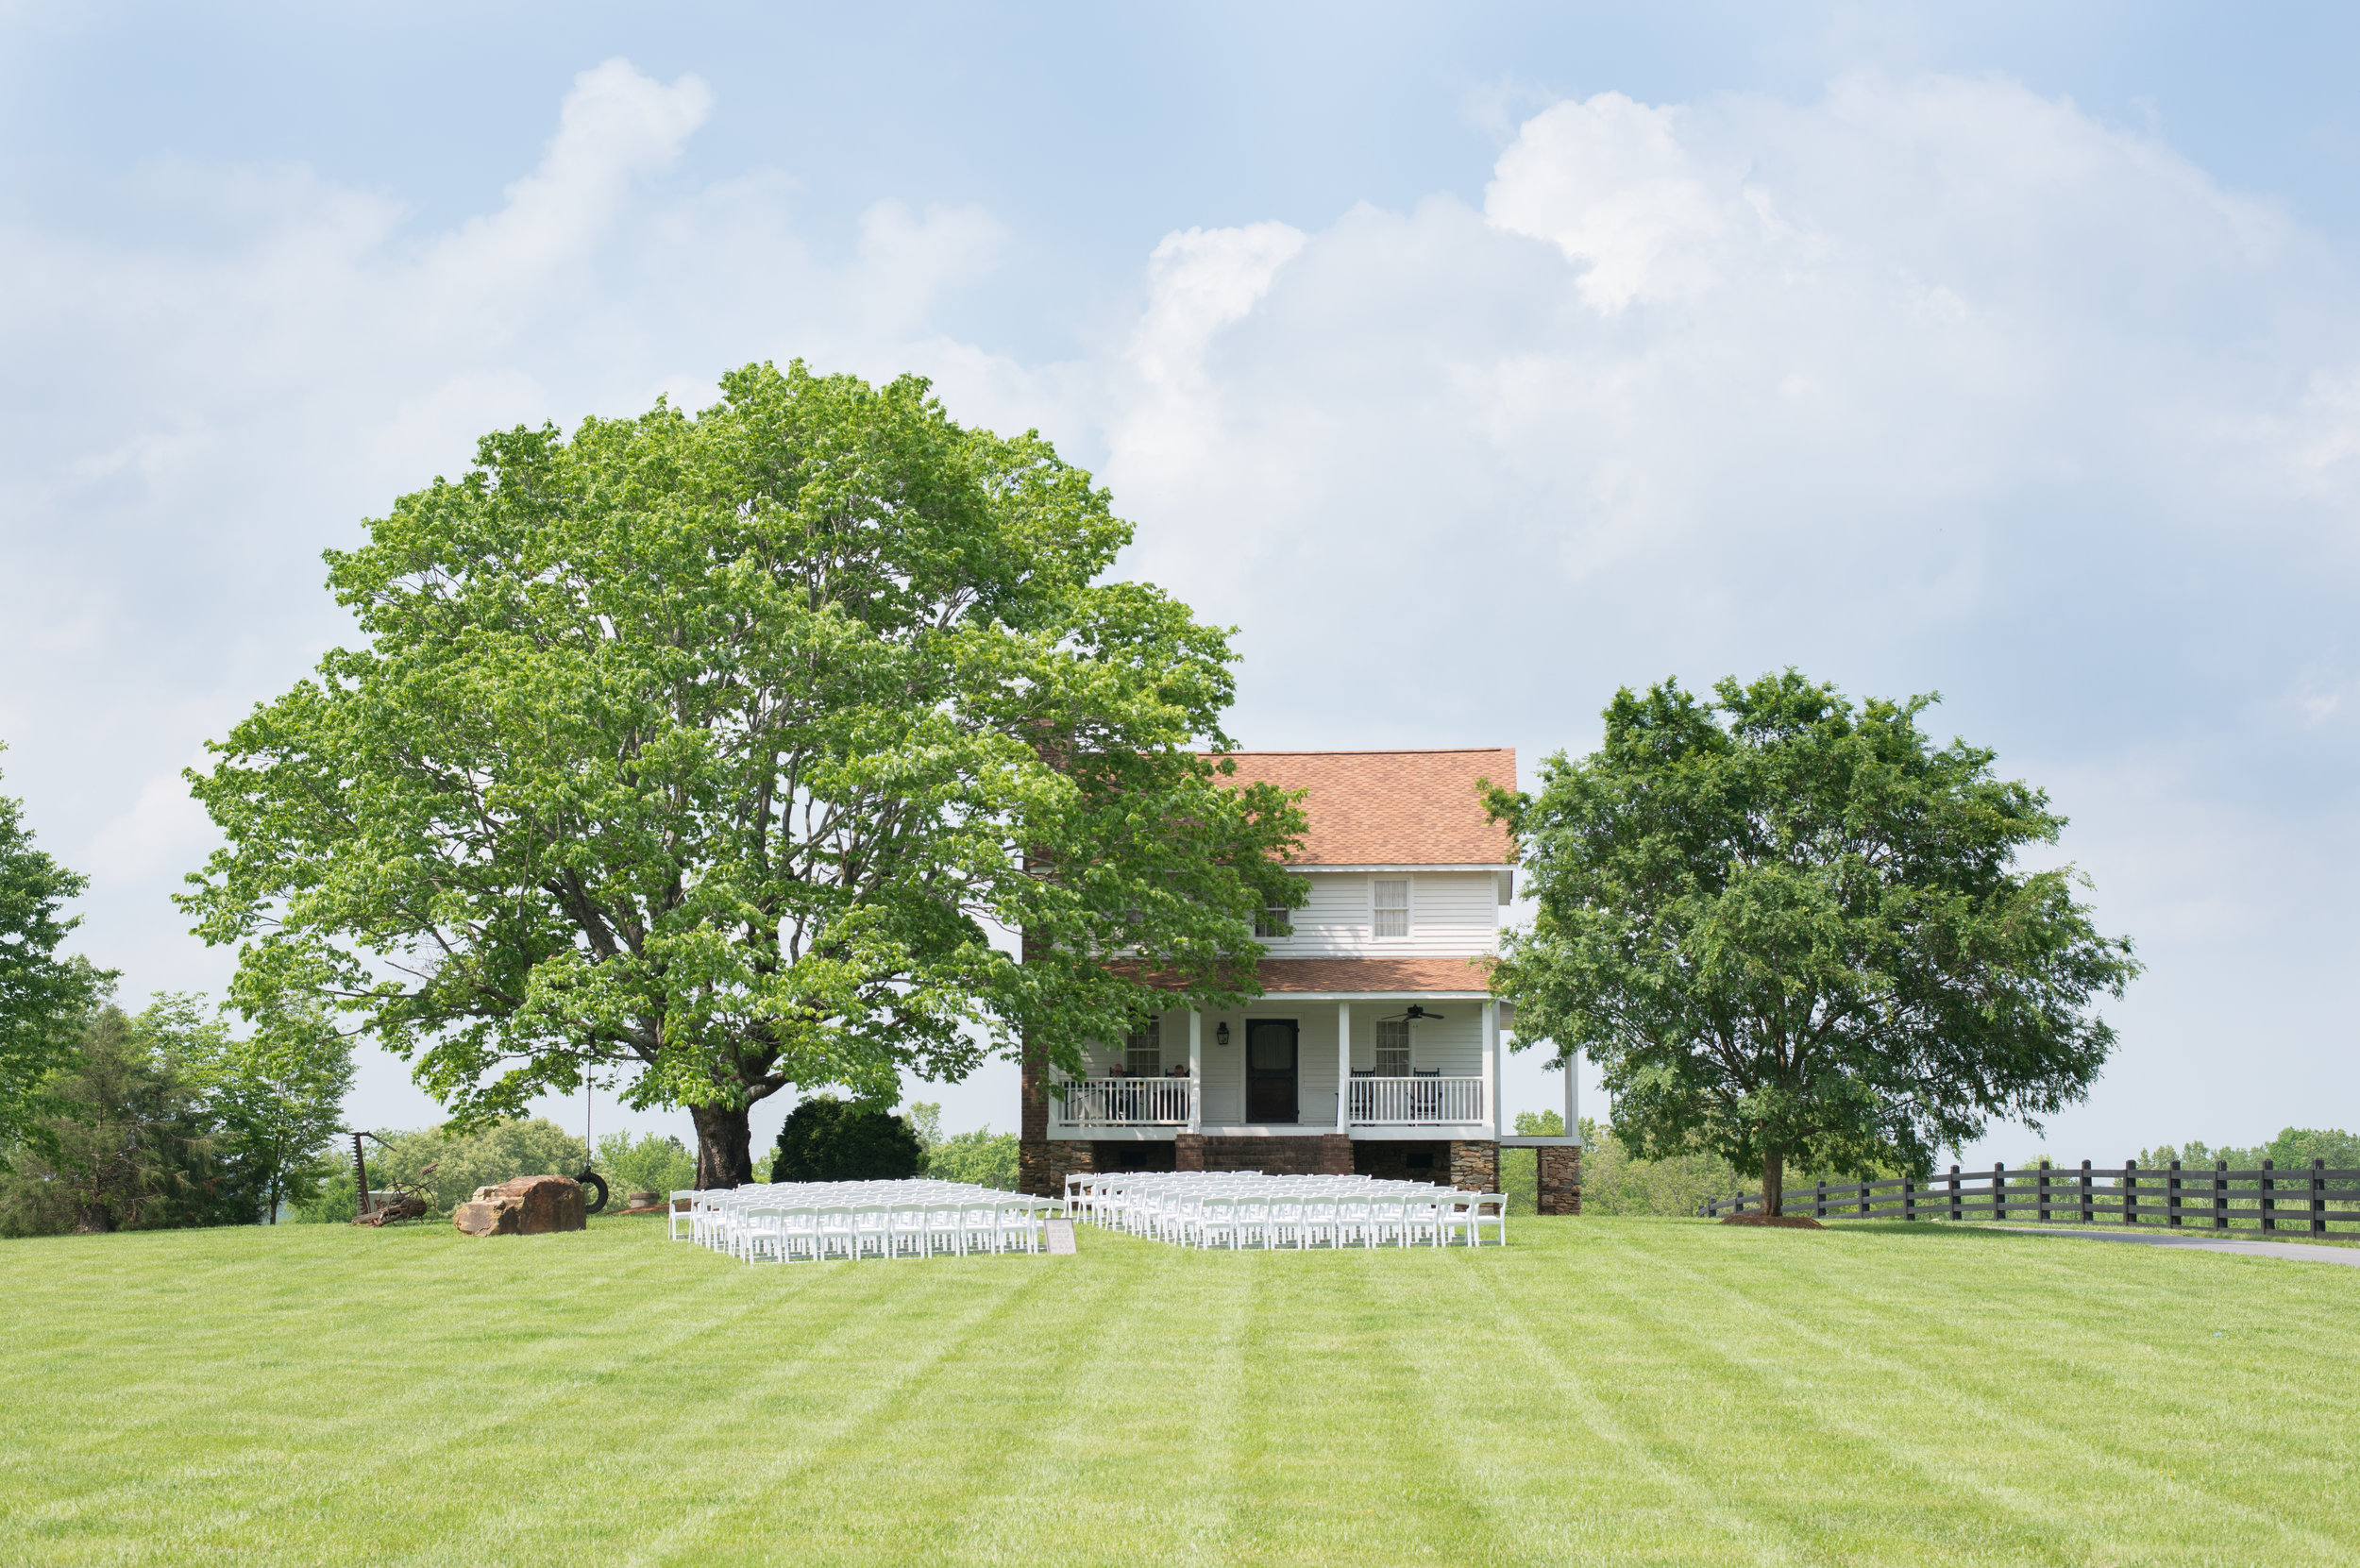 Courtney has a personal connection with this property, so getting married under the tree with the tire swing was a very personal touch and such a charming country setting for a wedding.